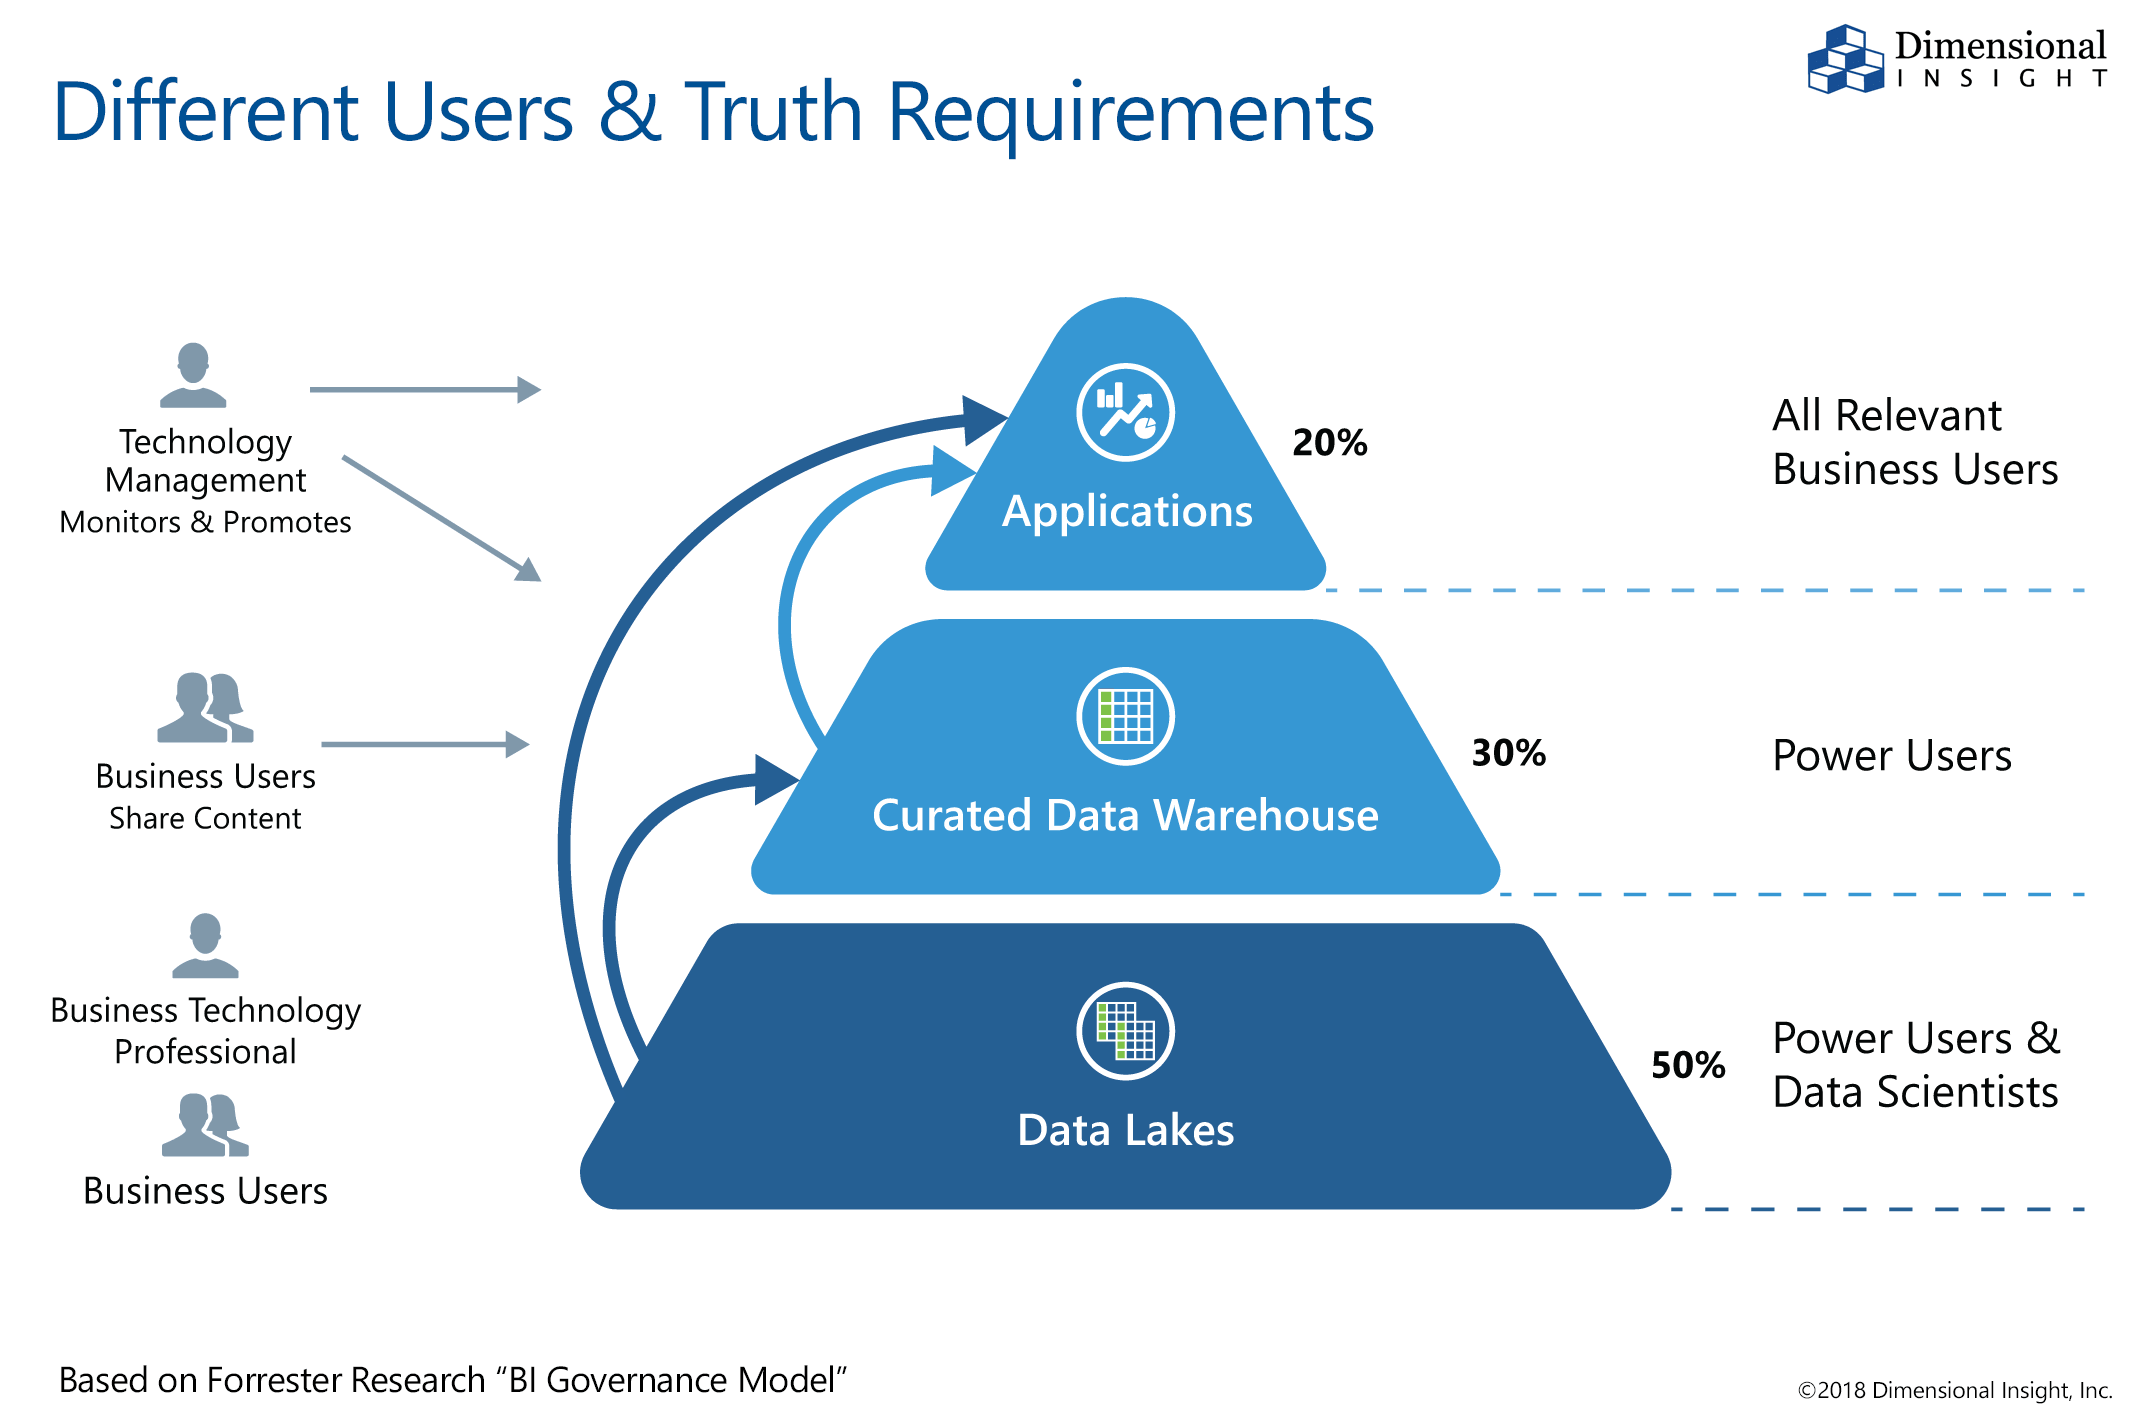 Different Users & Truth Requirements